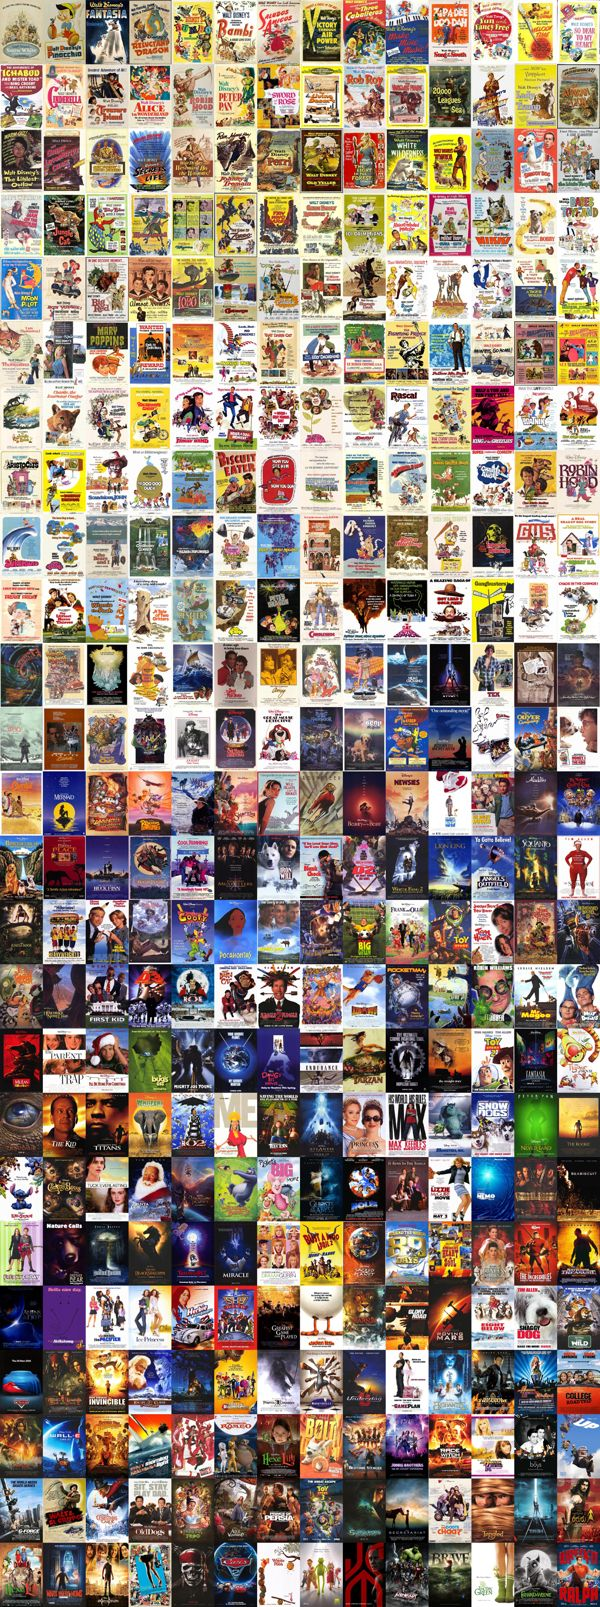 ALL THE DISNEY MOVIES!!!!!!!!!!!!!!!!!!!!!!!!!!!!!!!!!!!!!!!!!!!!!!!!!!!!!!!!!!!!!!!!!!!!!!!!!!!!!!!!!!!!!!!!!!!!!!!!!!!!!!!!!!!!!!!!!!!!!!!!!!!!!!!!!!!!!!!!!!!!!!!!!!!!!!!!!!!!!!!!!!!!!!!!!!!!!!!!!!!!!!!!!!!!!!!!!!!!!!!!!!!!!!!!!!!!!!!!!!!!!!!!!!!!!!!!!!!!!!!!!!!!!!!!!!!!!!!!!!!!!!!!!!!!!!!!!!!!!!!!!!!!!!!!!!!!!!!!!!!!!!!!!!!!!!!!!!!!!!!!!!!!!!!!!!!!!!!!!!!!!!!!!!!!!!!!!!!!!!!!!!!!!!!!!!!!!1